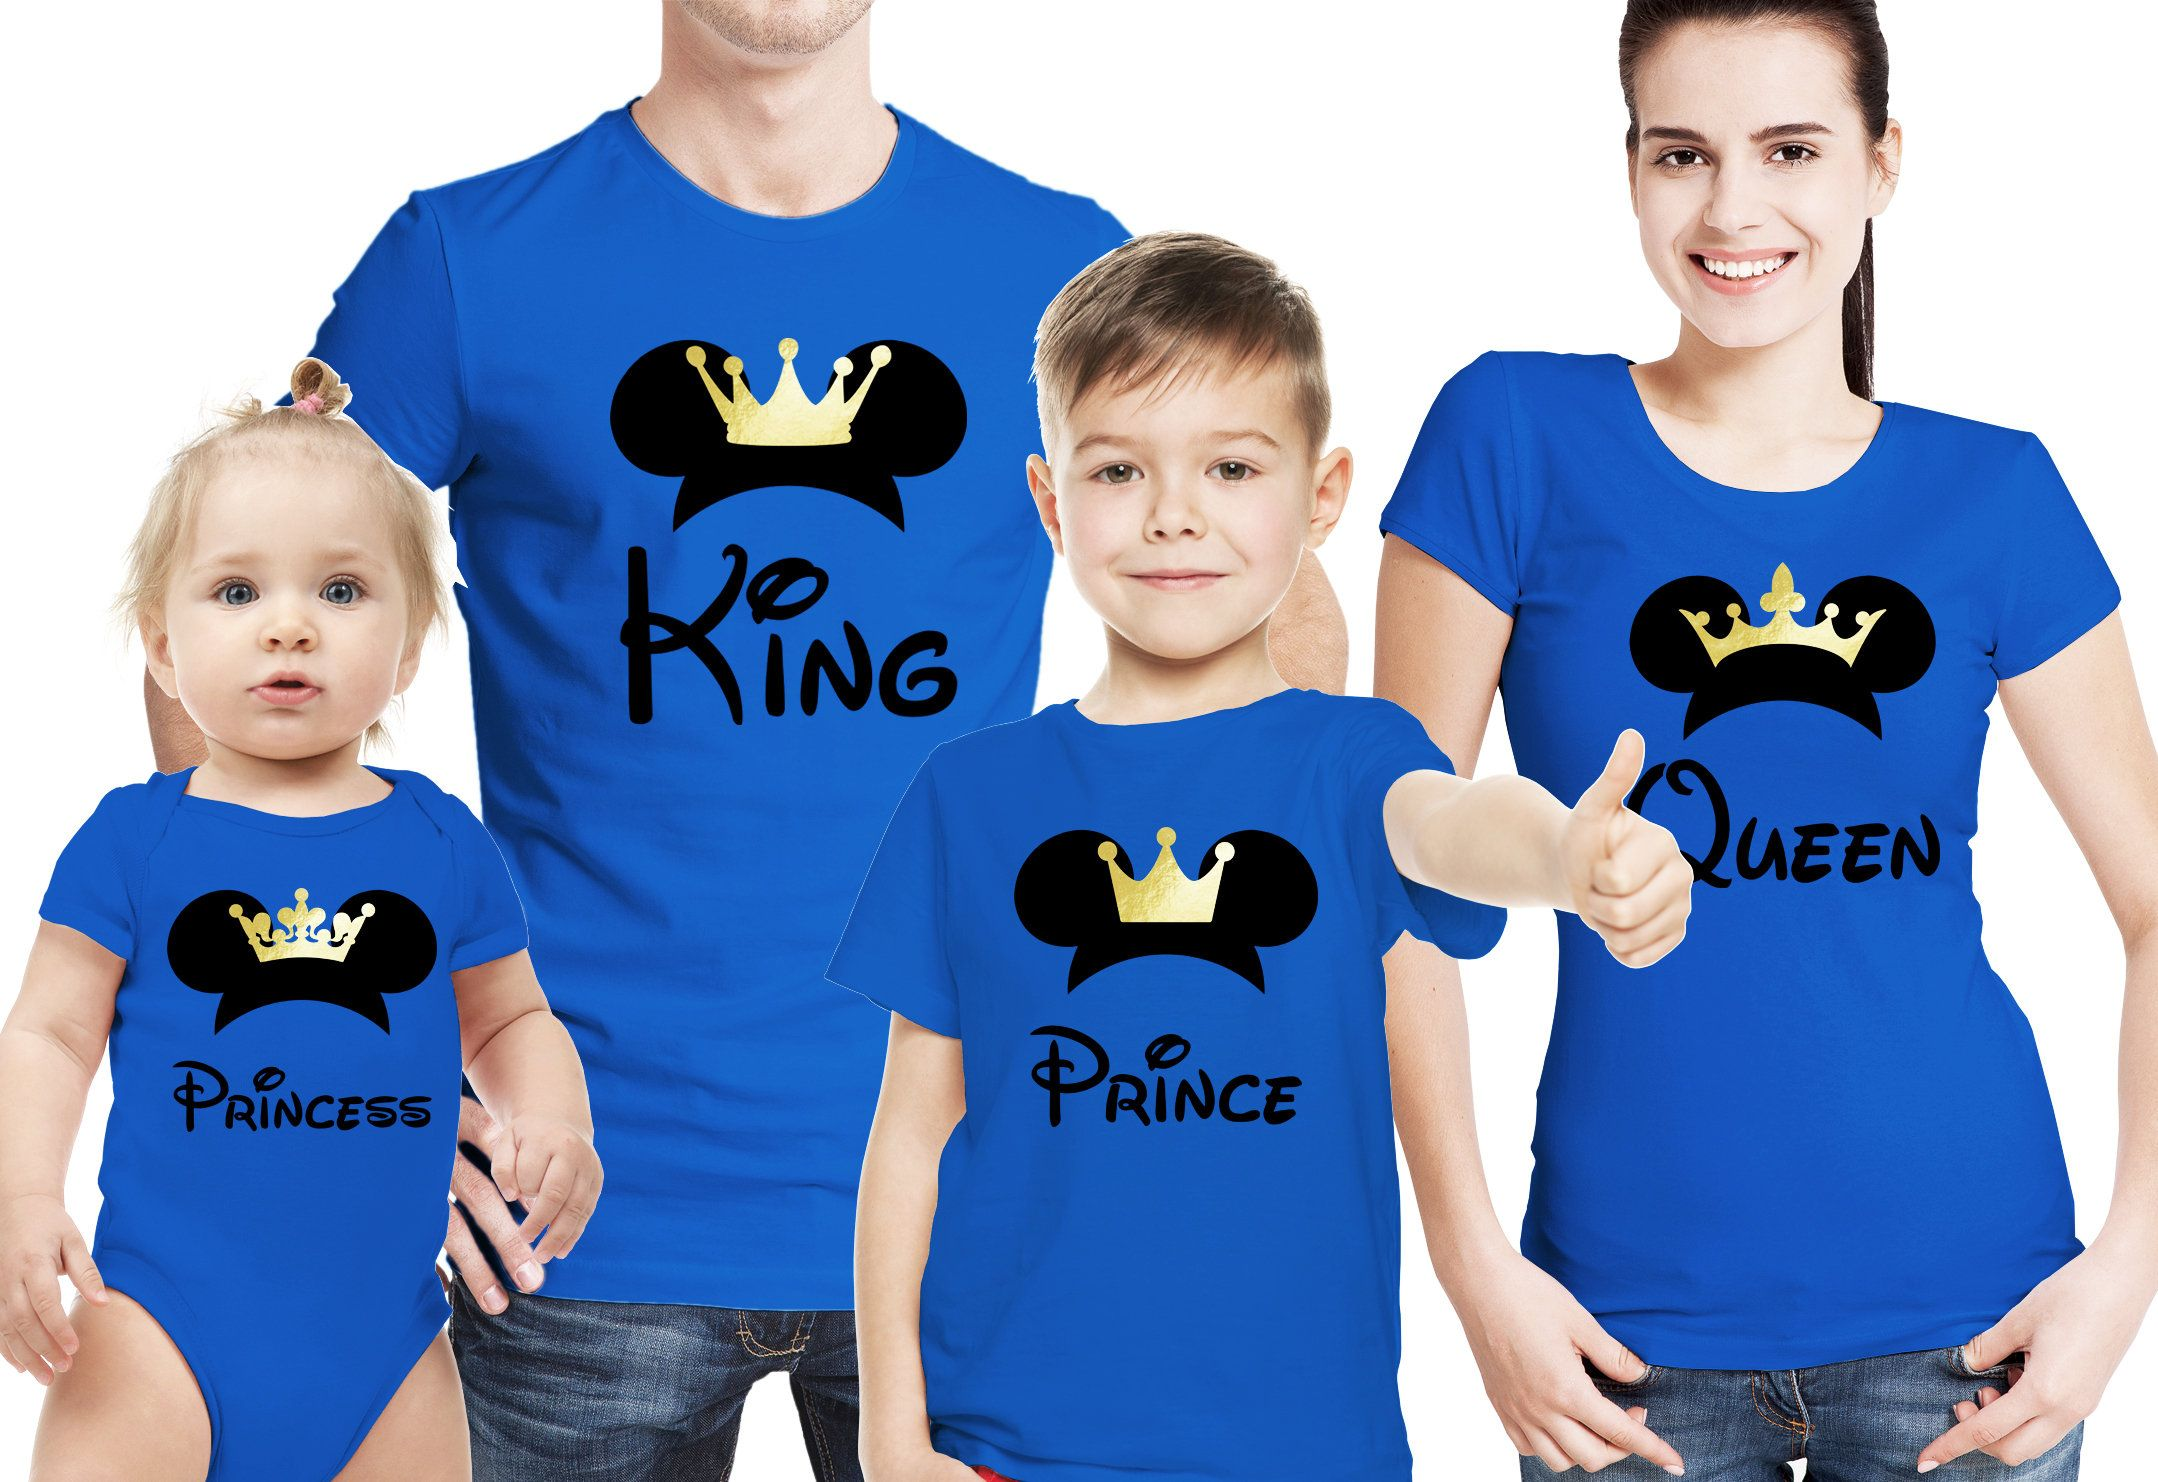 Family Mickey Mouse King Queen Prince Princess Blue T Shirts Set